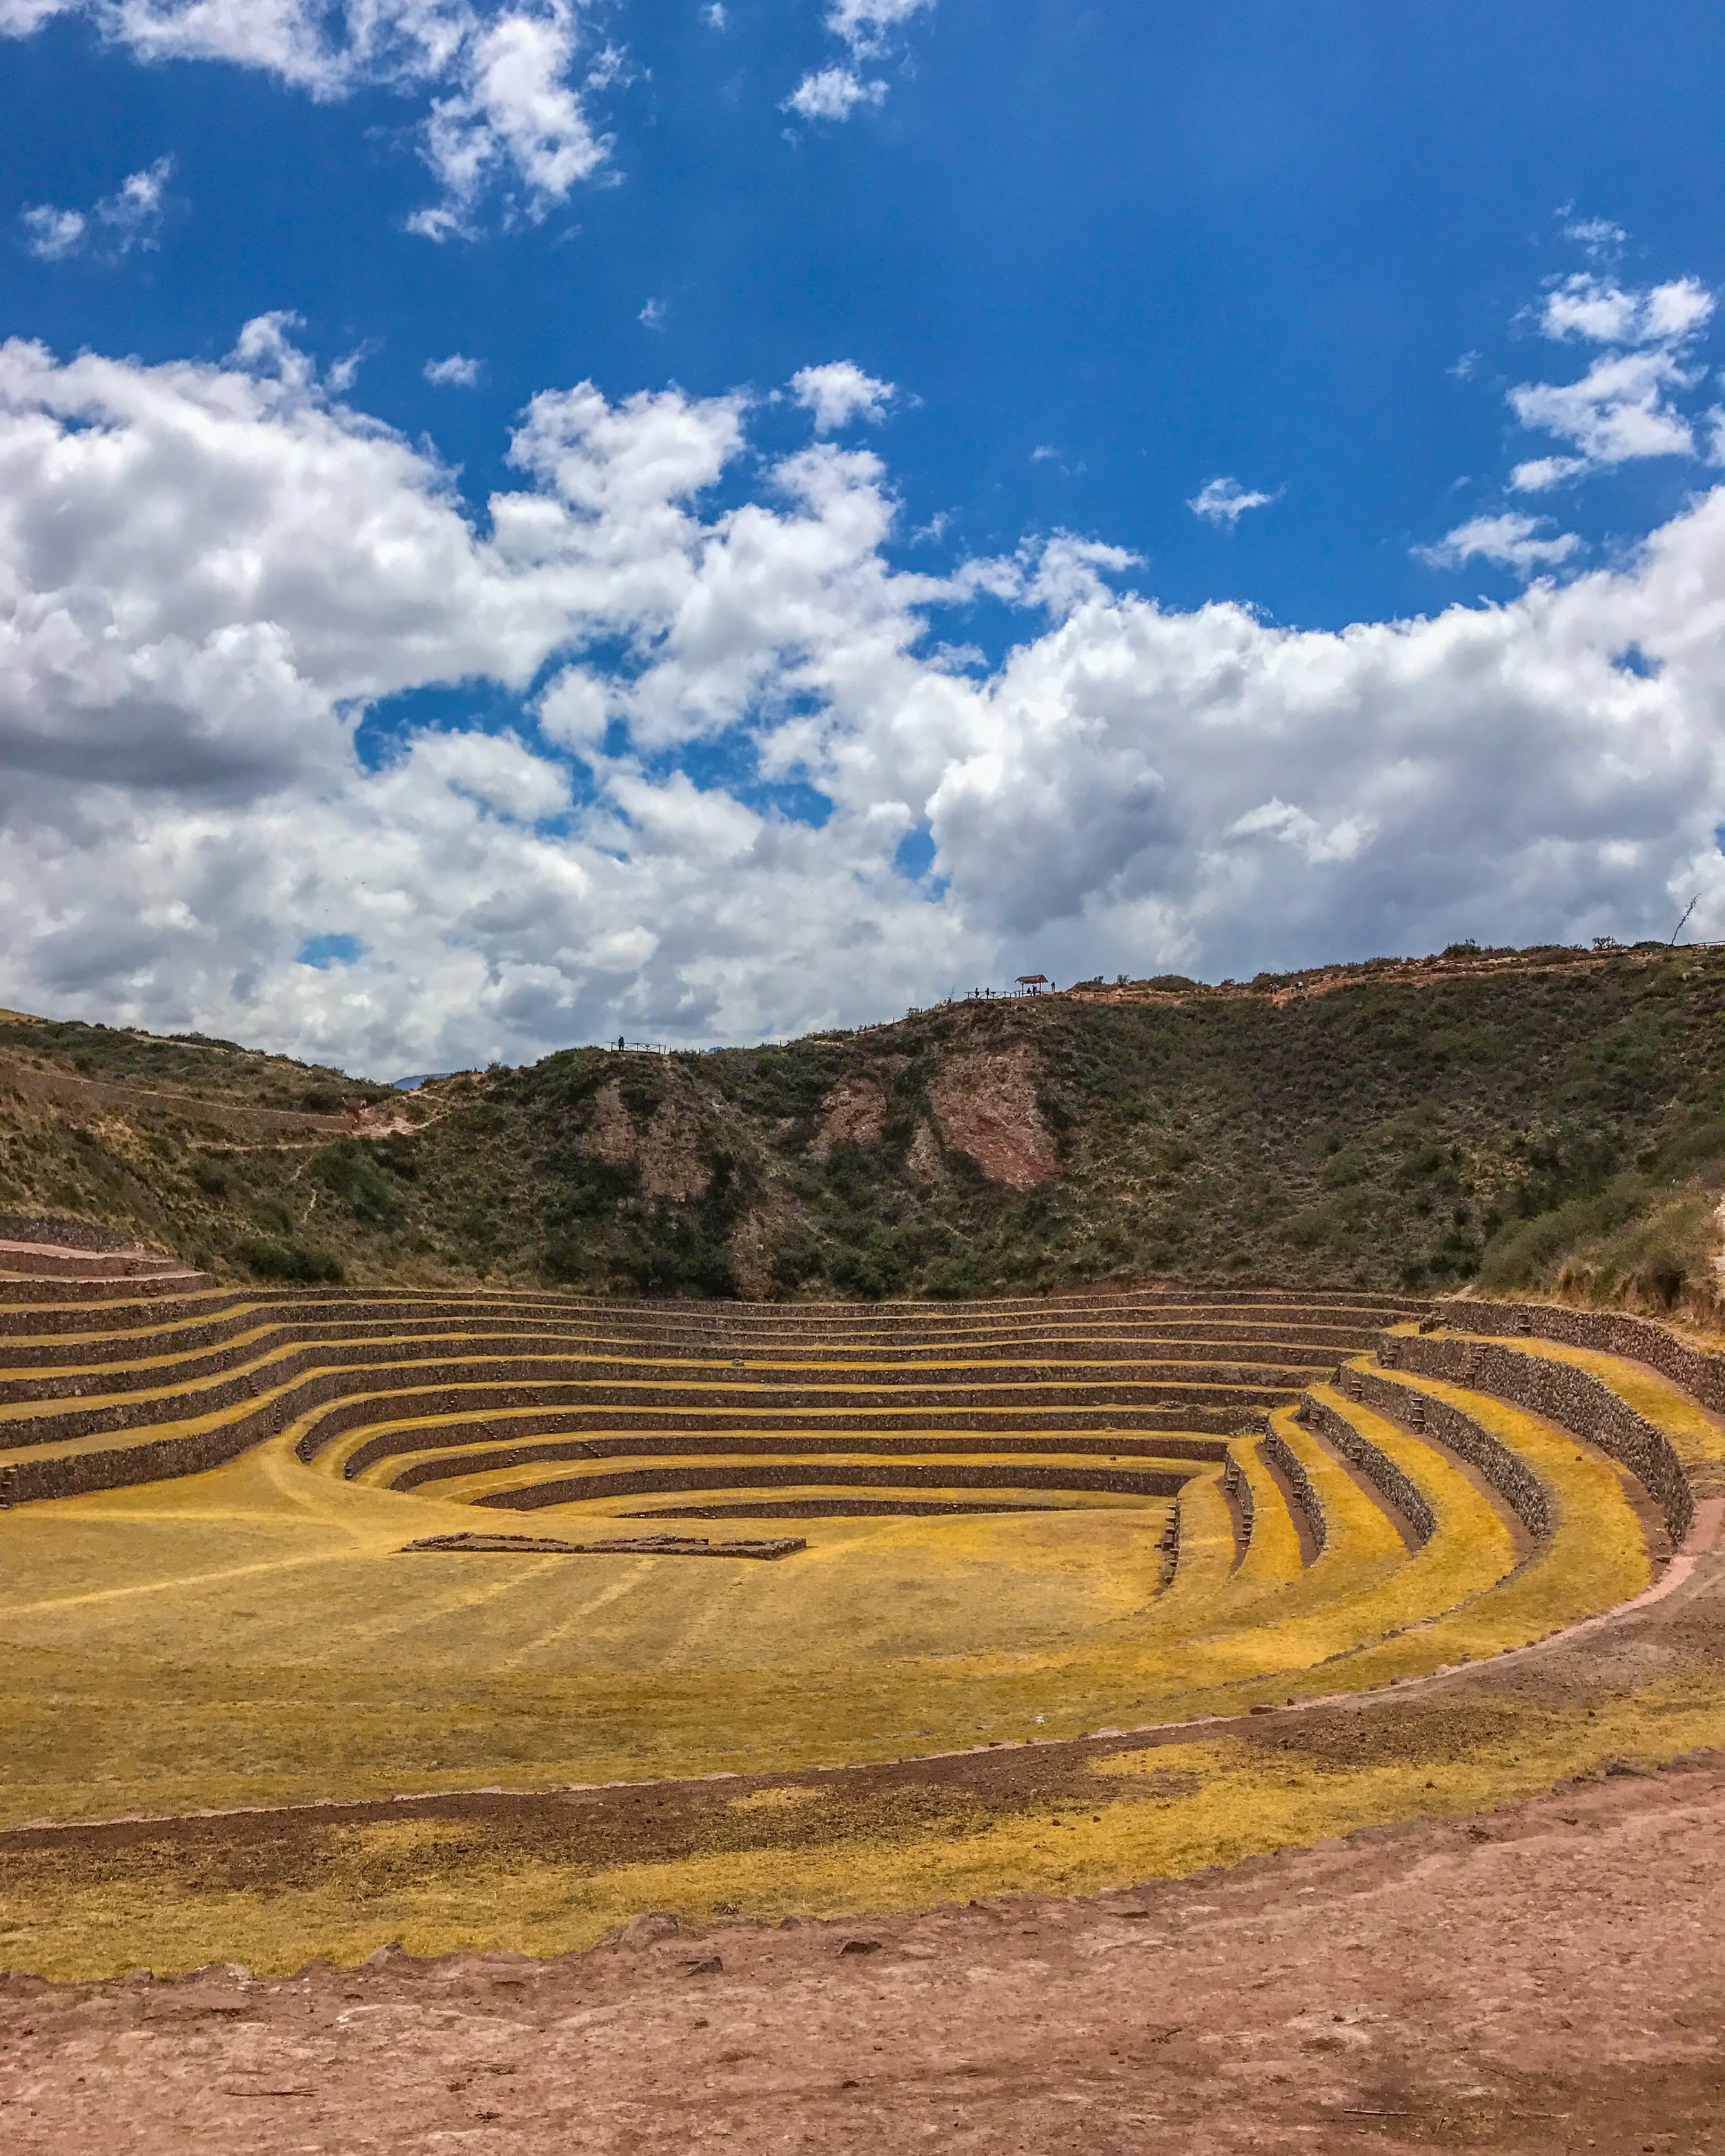 Moray's Inca agricultural test lab terraces